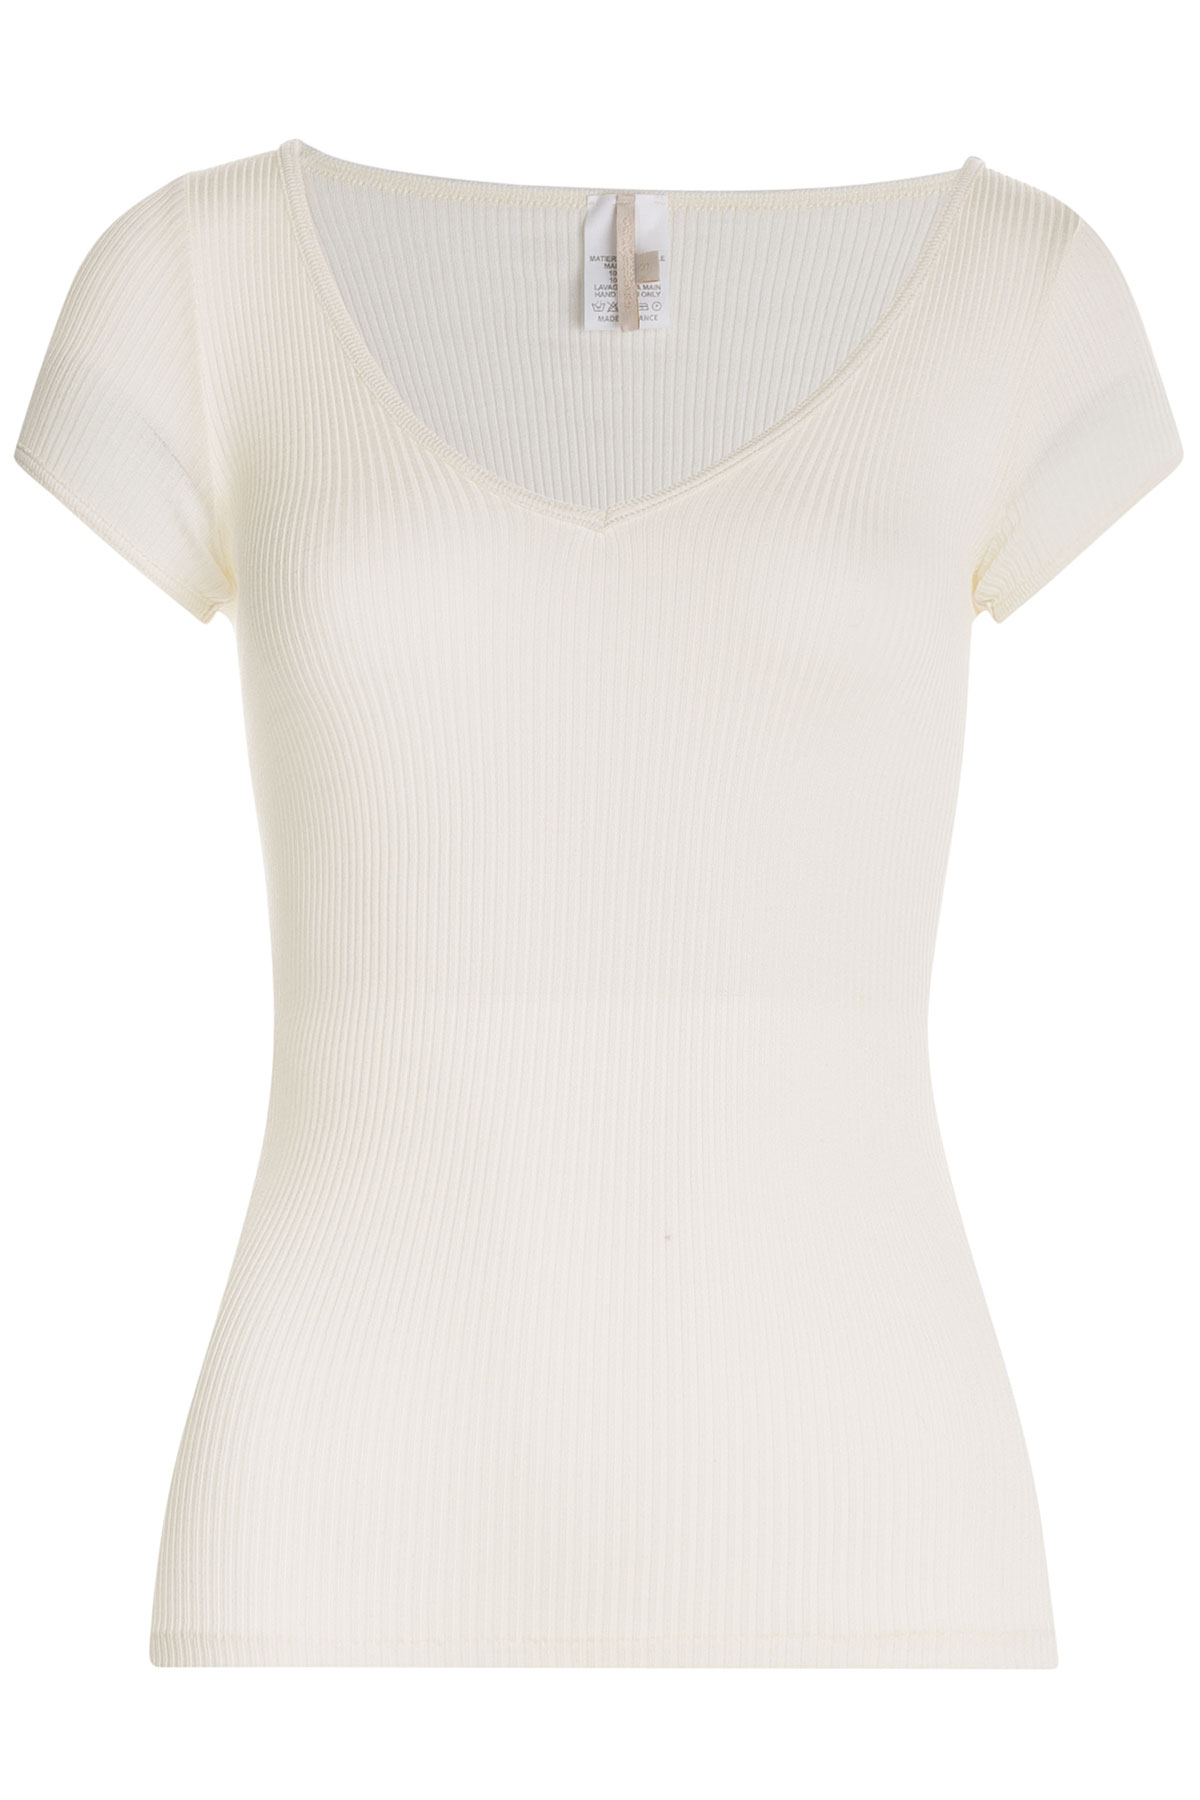 Vanessa bruno ribbed silk jersey t shirt in white lyst for Silk white t shirt